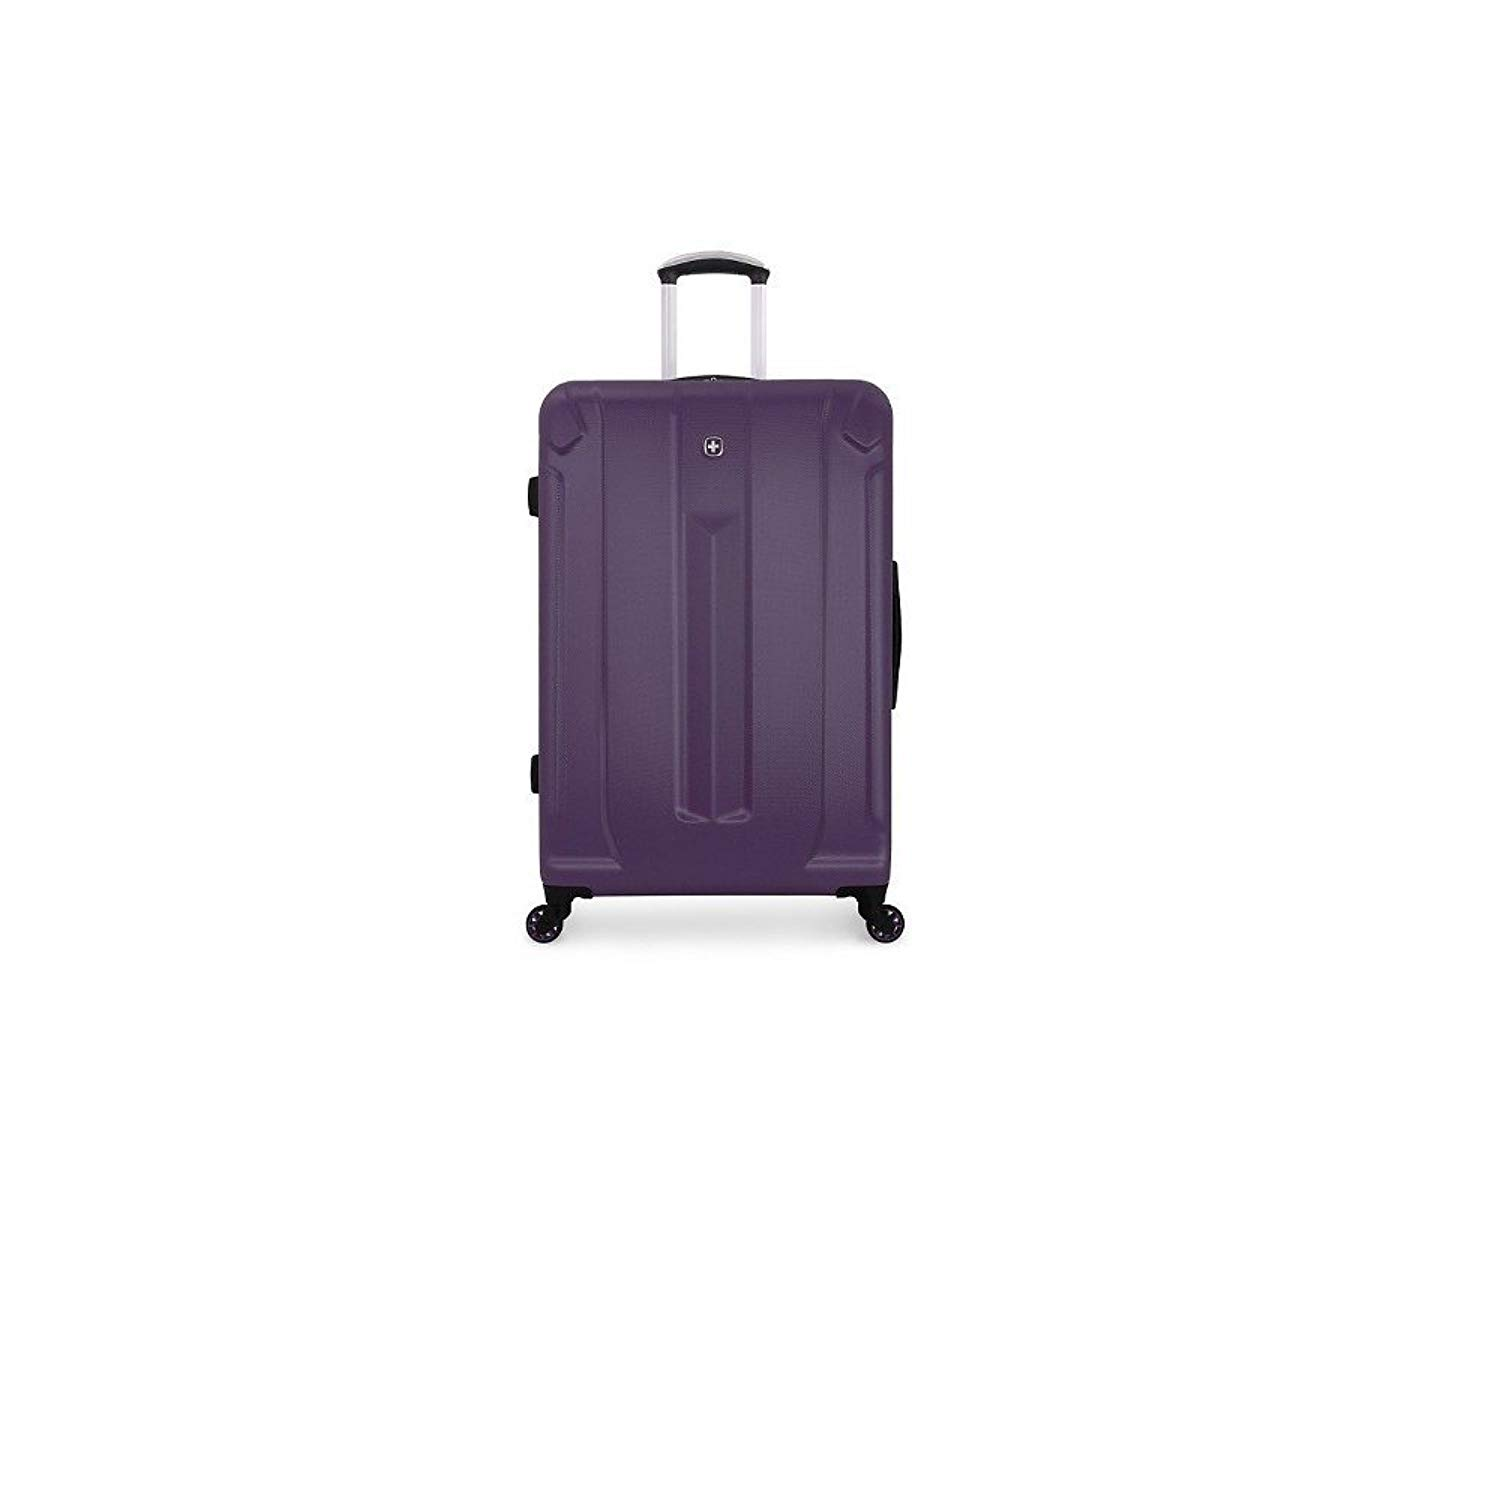 116f63b69d3b Get Quotations · Swiss Gear Purple Hardcover Suitcase